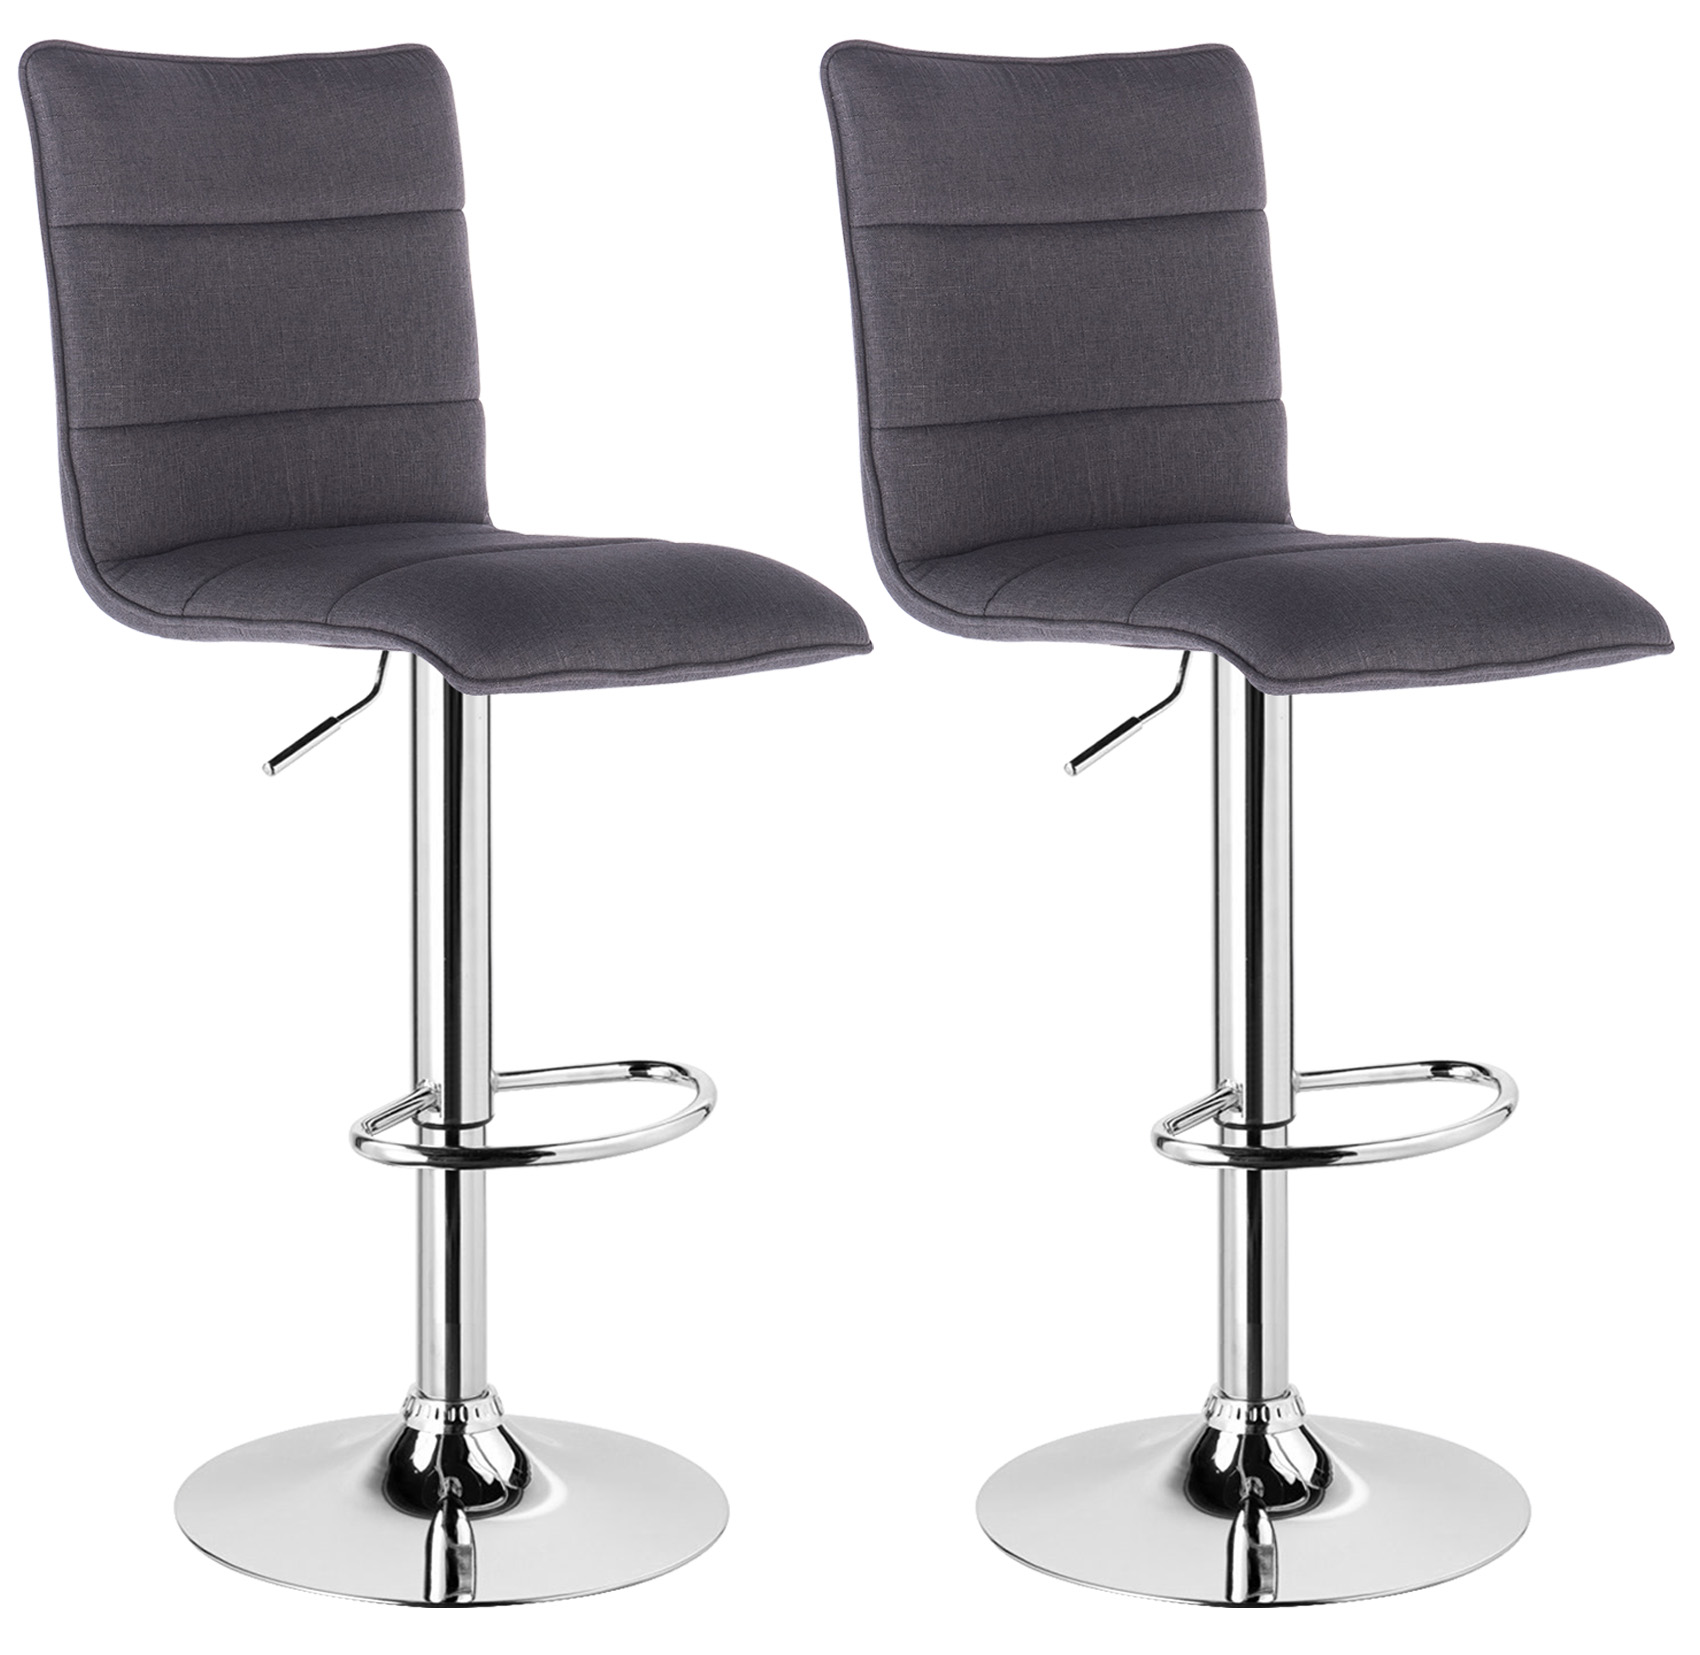 bar stools set of 2 faux leather kitchen breakfast stool chair chrome u008 ebay. Black Bedroom Furniture Sets. Home Design Ideas